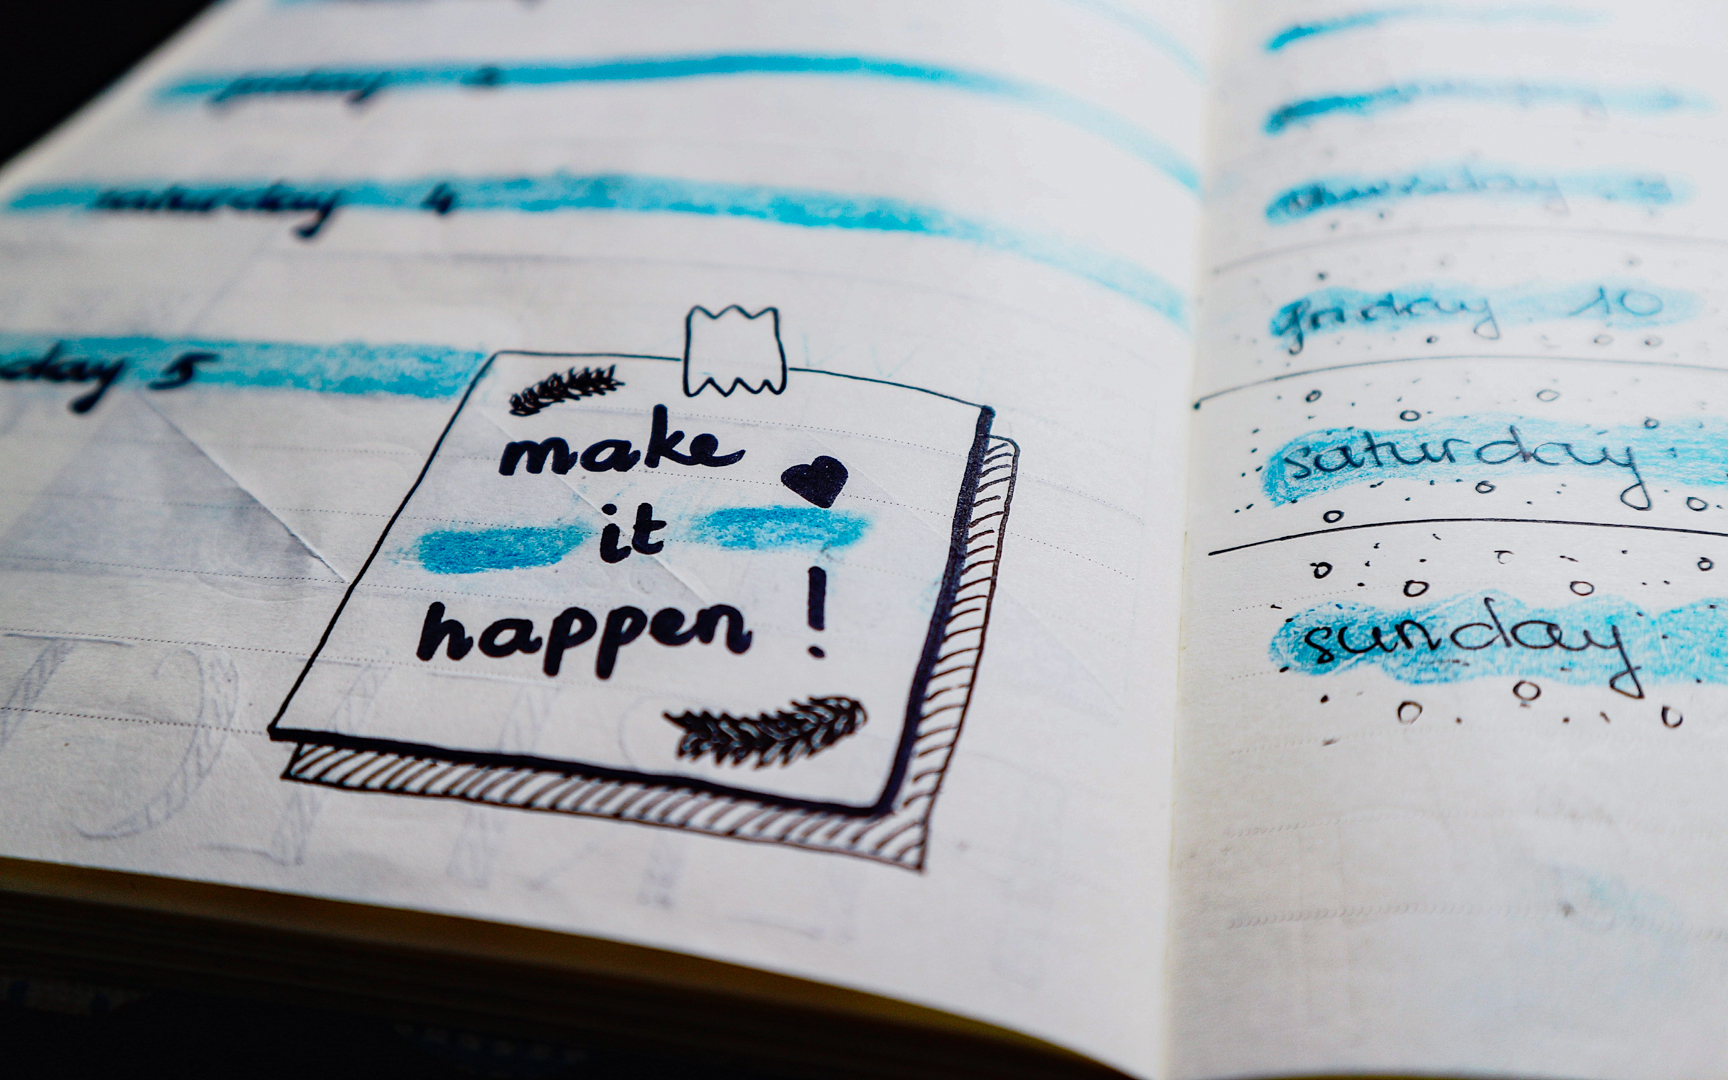 Diary with 'make it happen' text